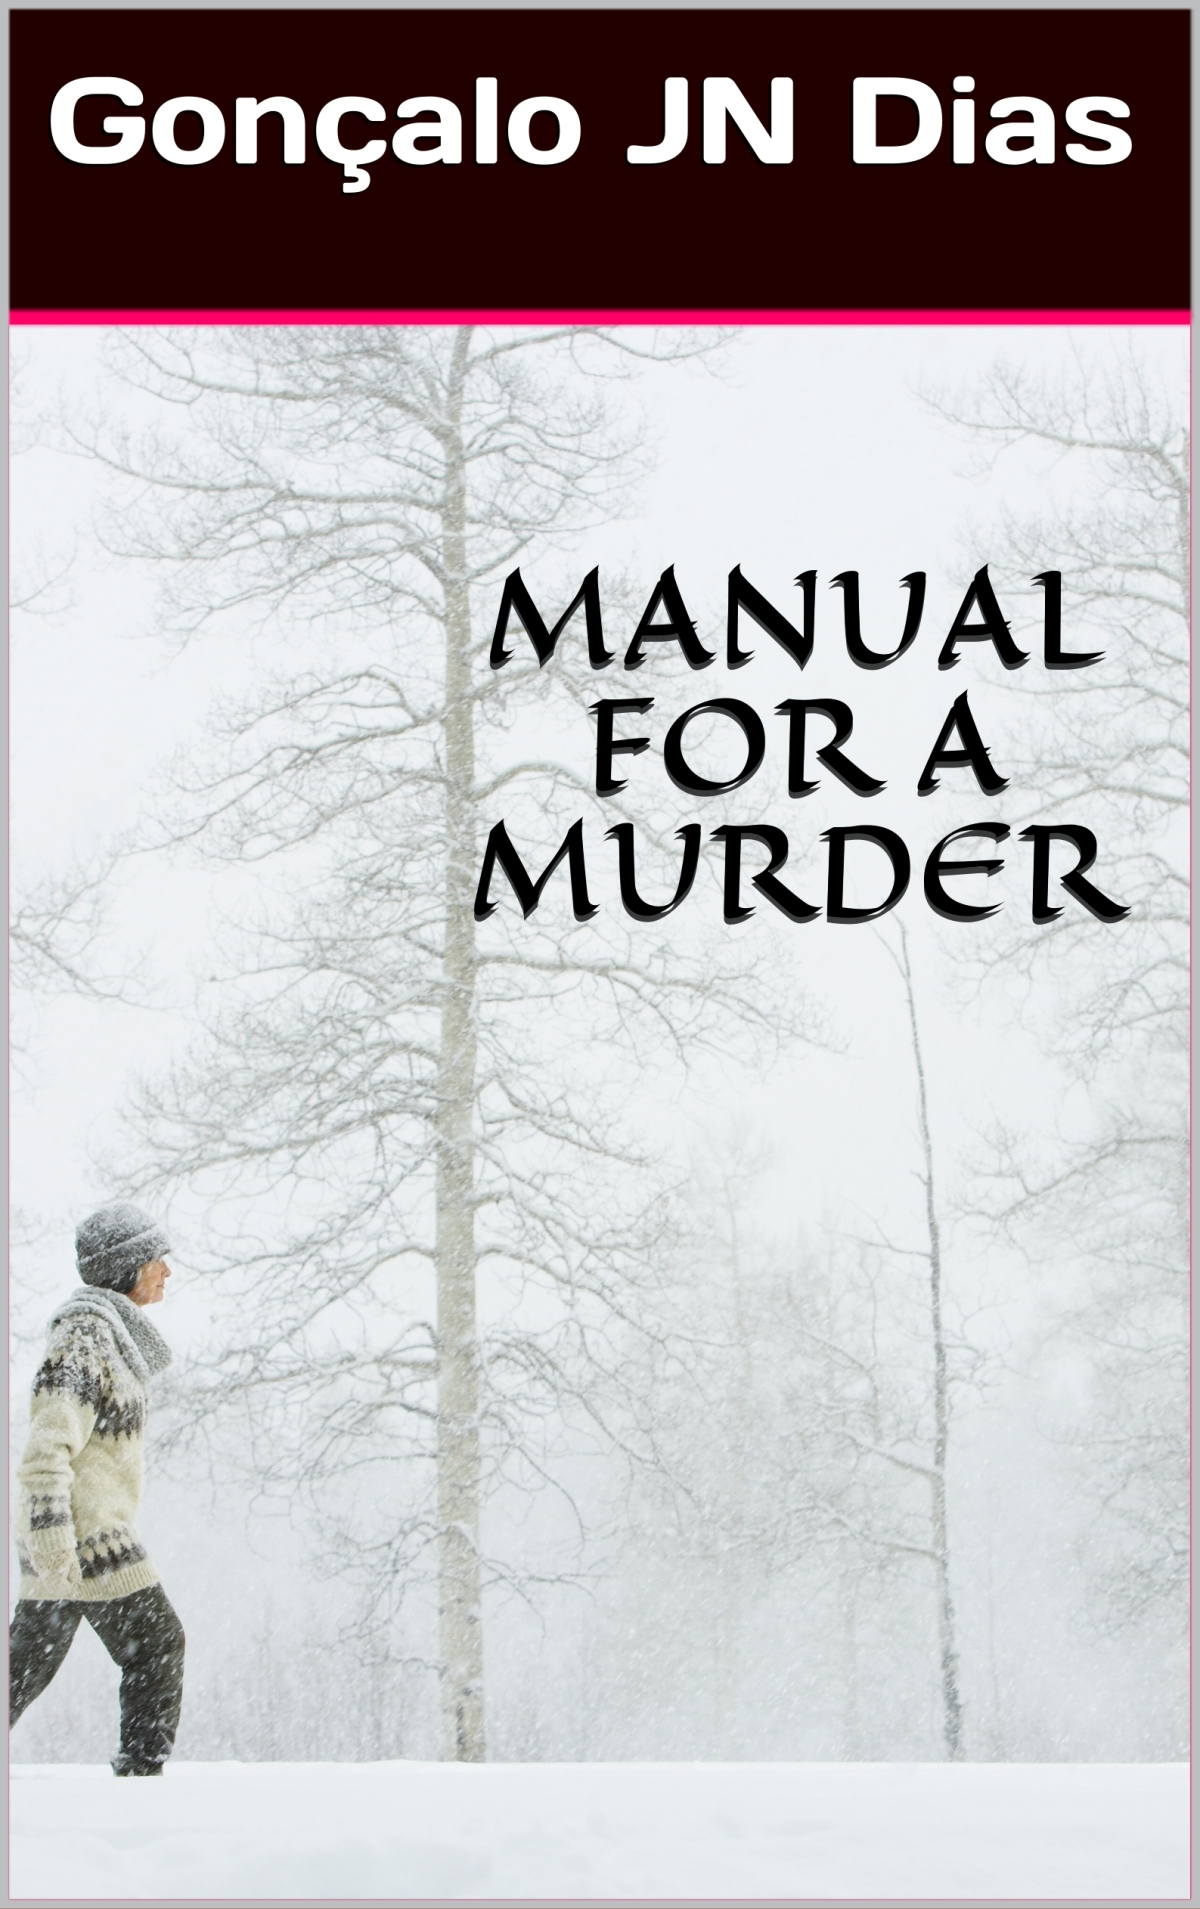 Manual for a Murder by Goncalo JN Dias